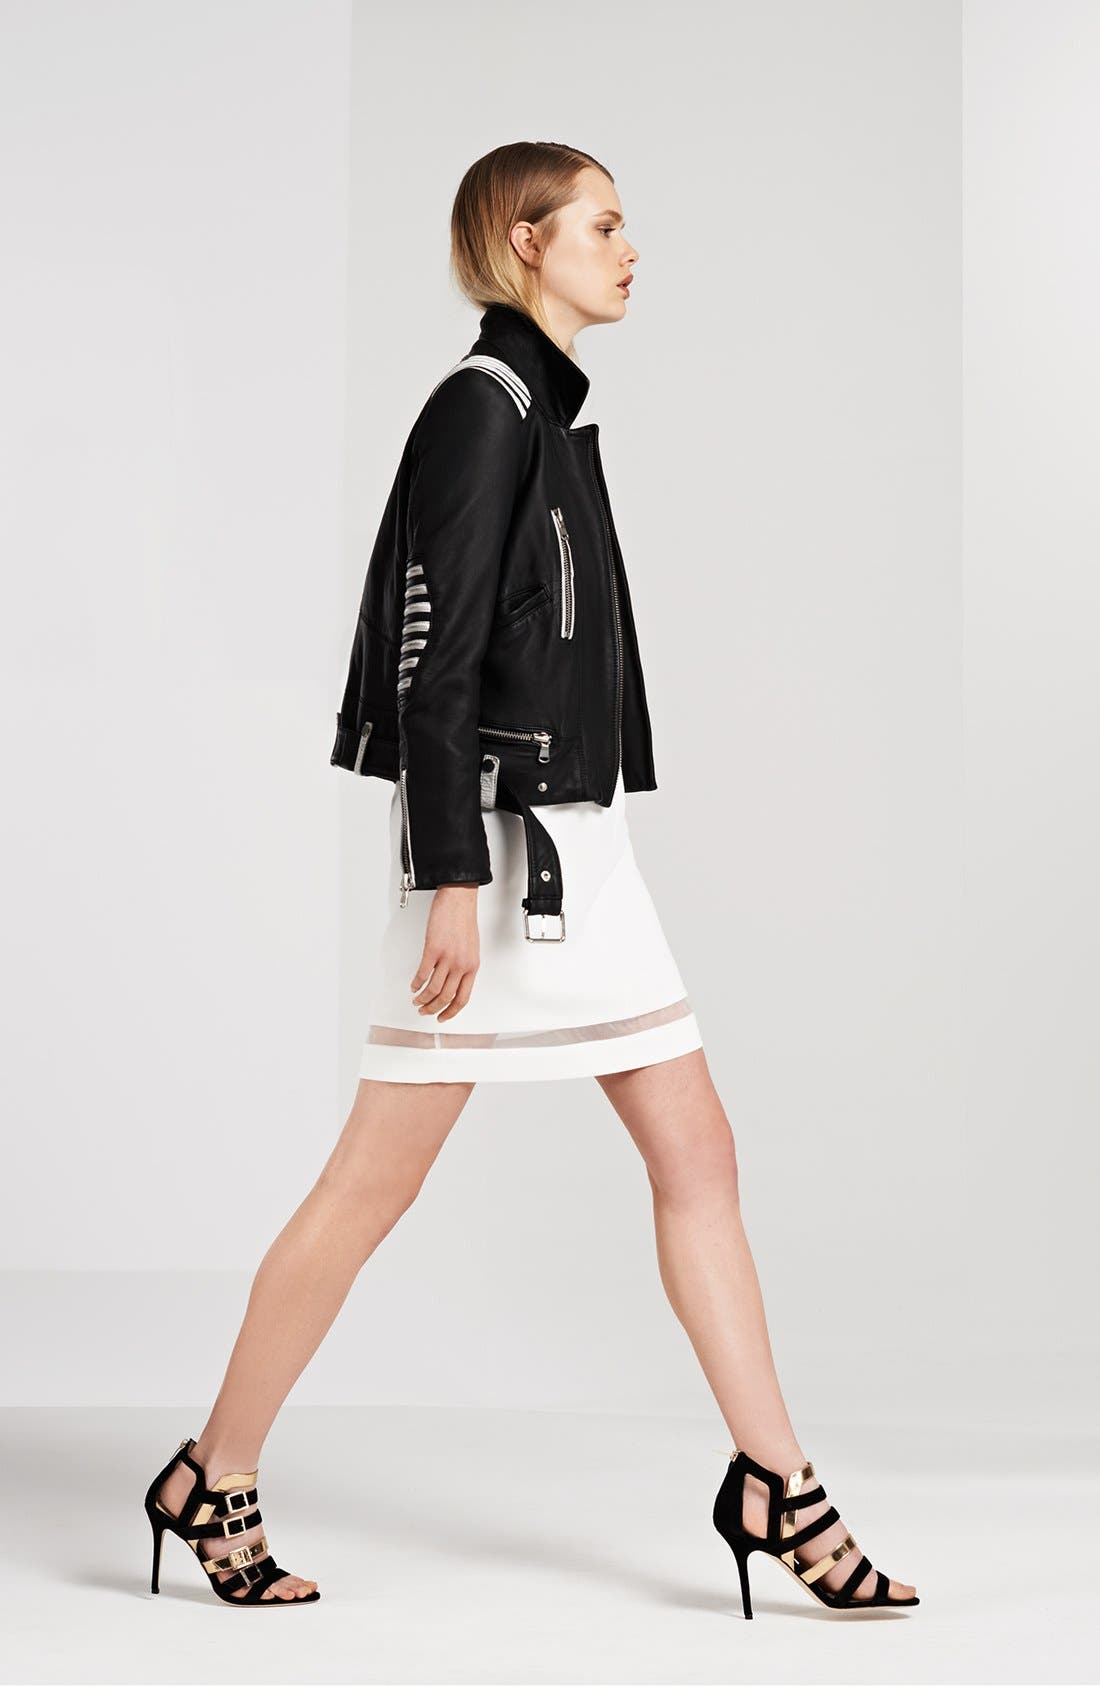 Main Image - The Kooples Crepe Dress & Leather Jacket